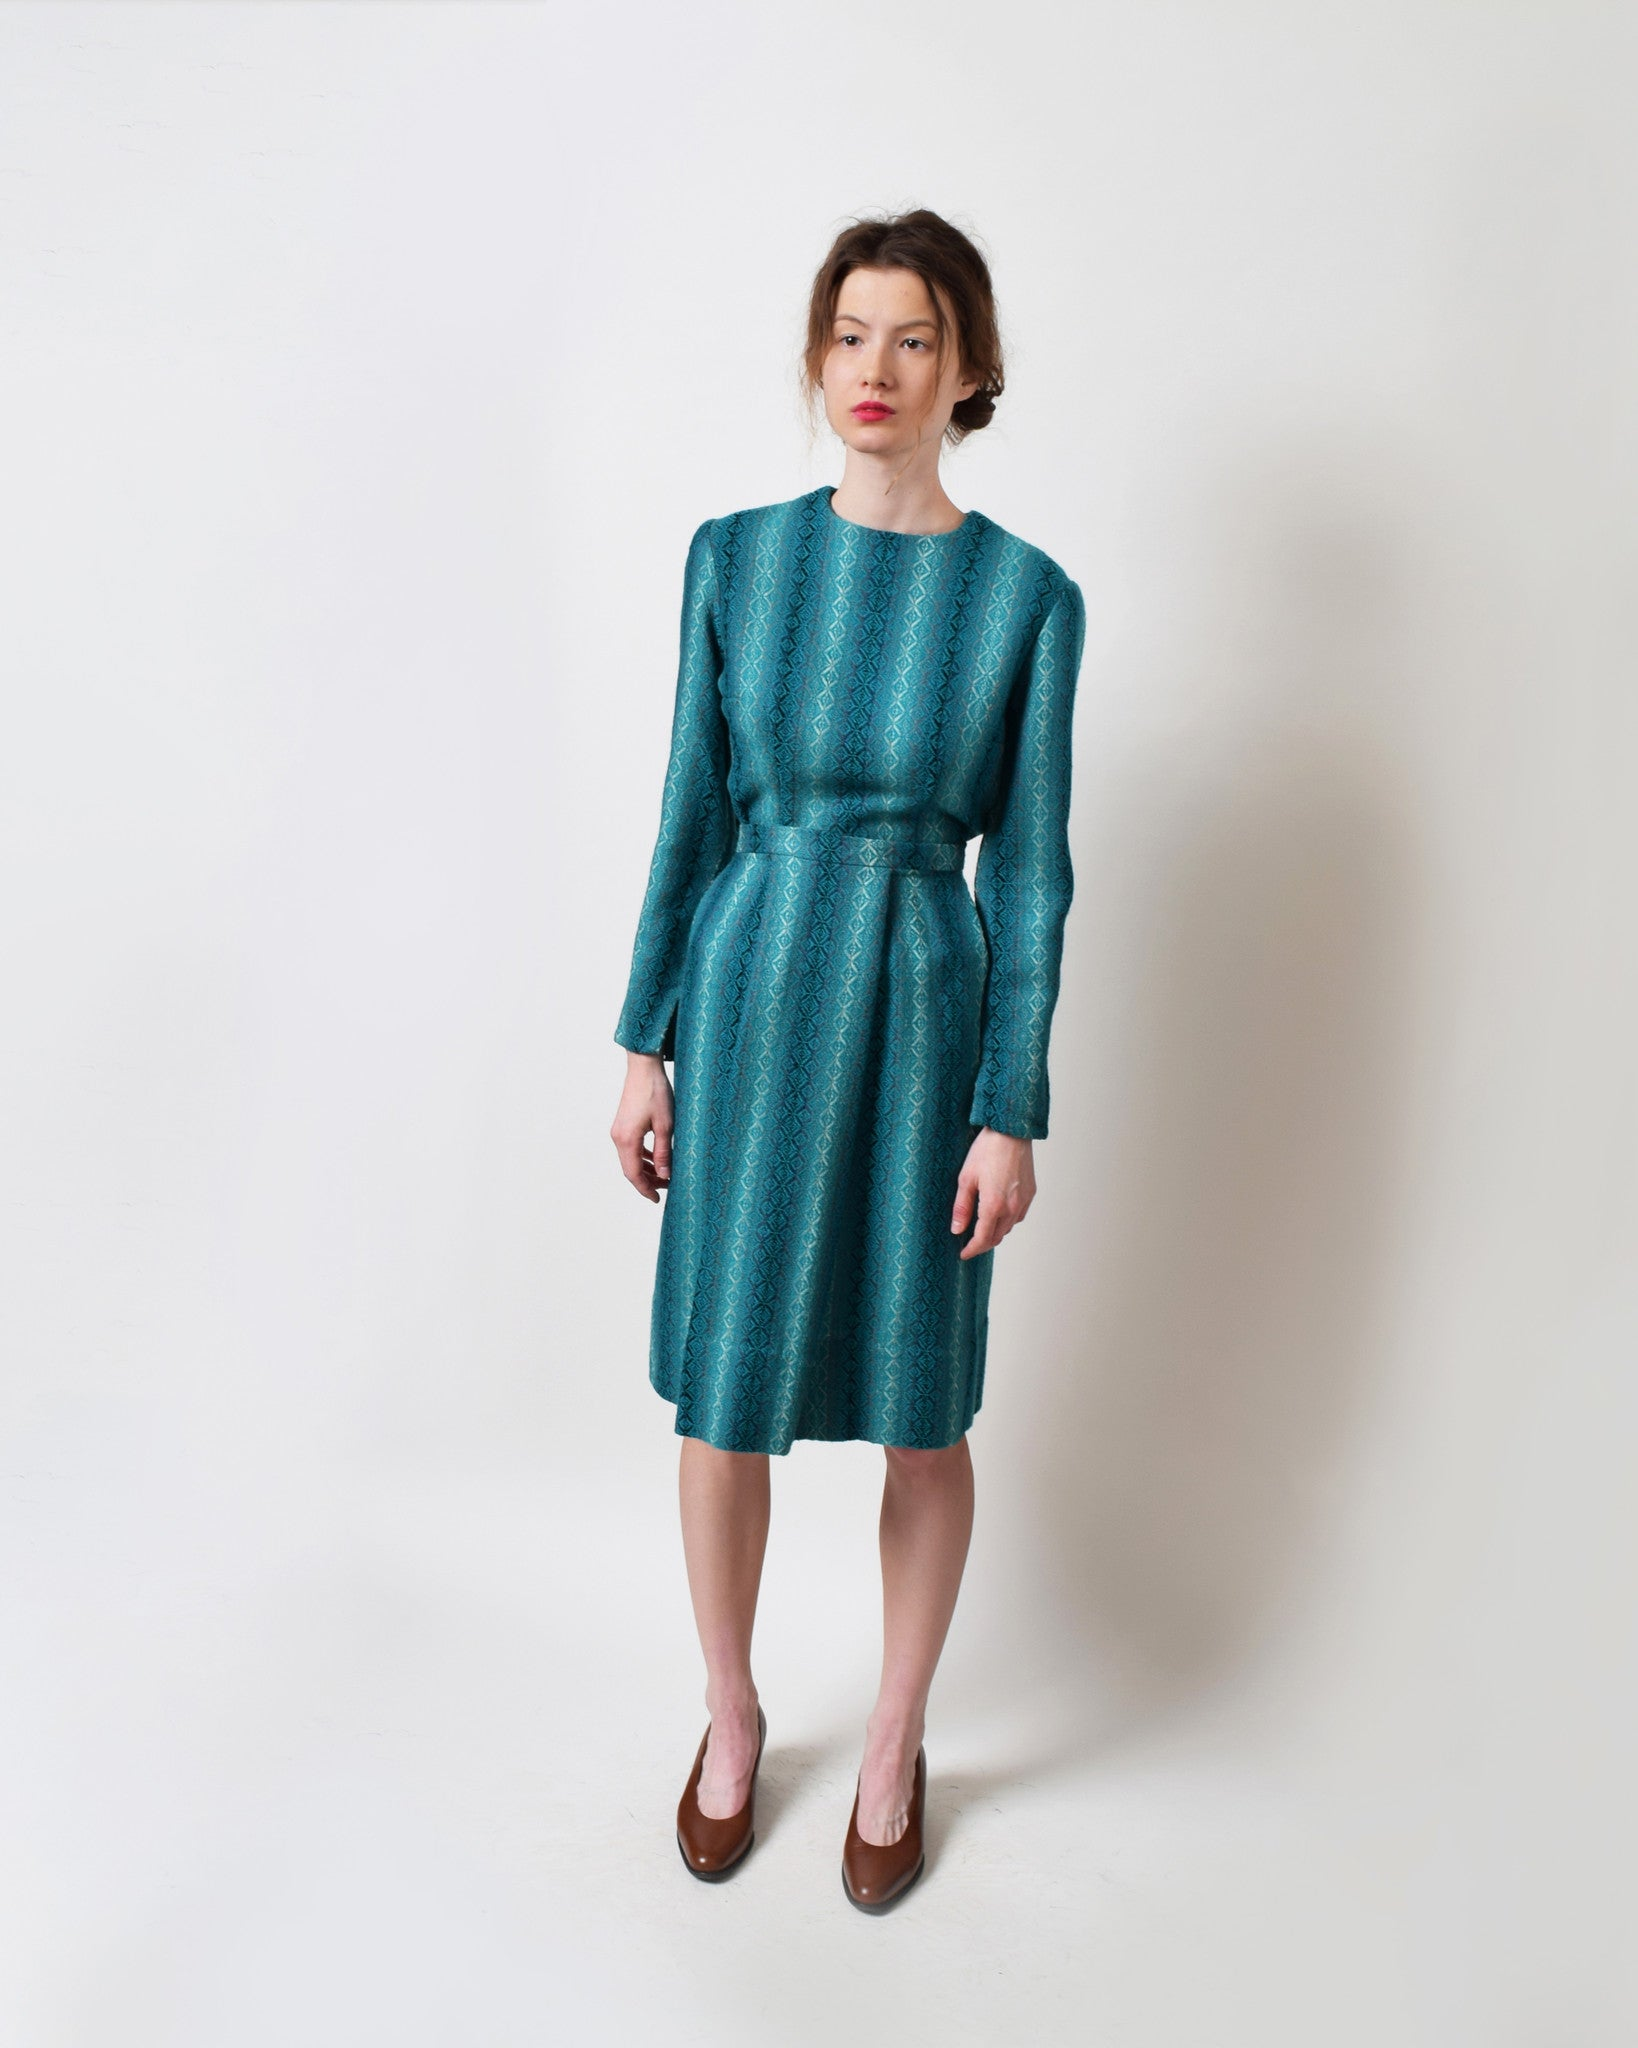 Vintage 1950s Teal Two Piece Set